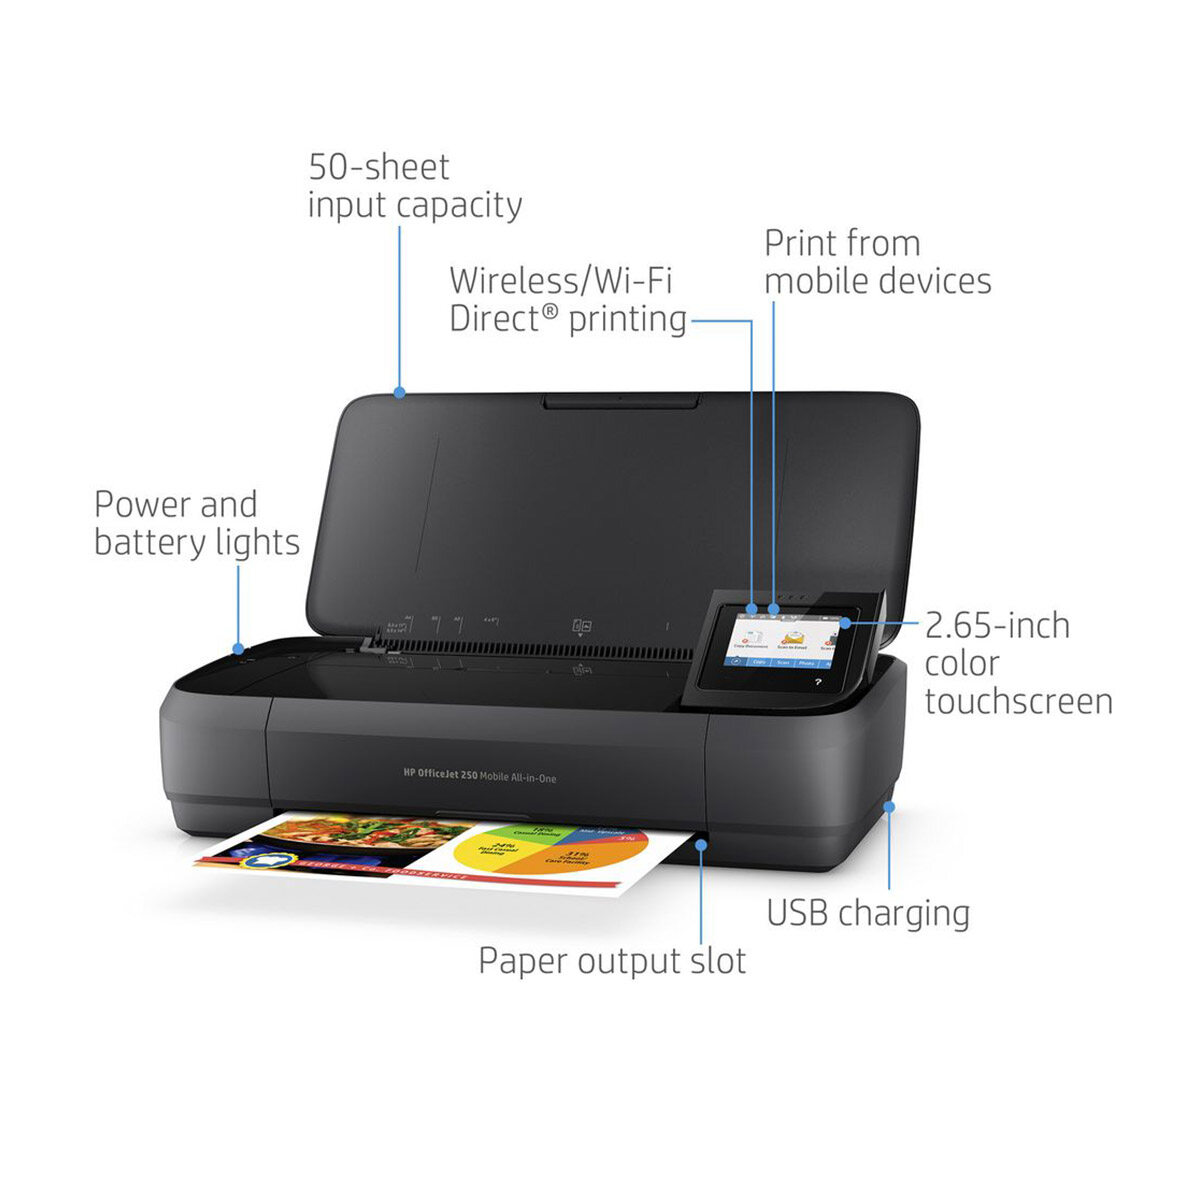 HP OfficeJet 250 Mobile All-in-One Printer Print, Scan, & Copy